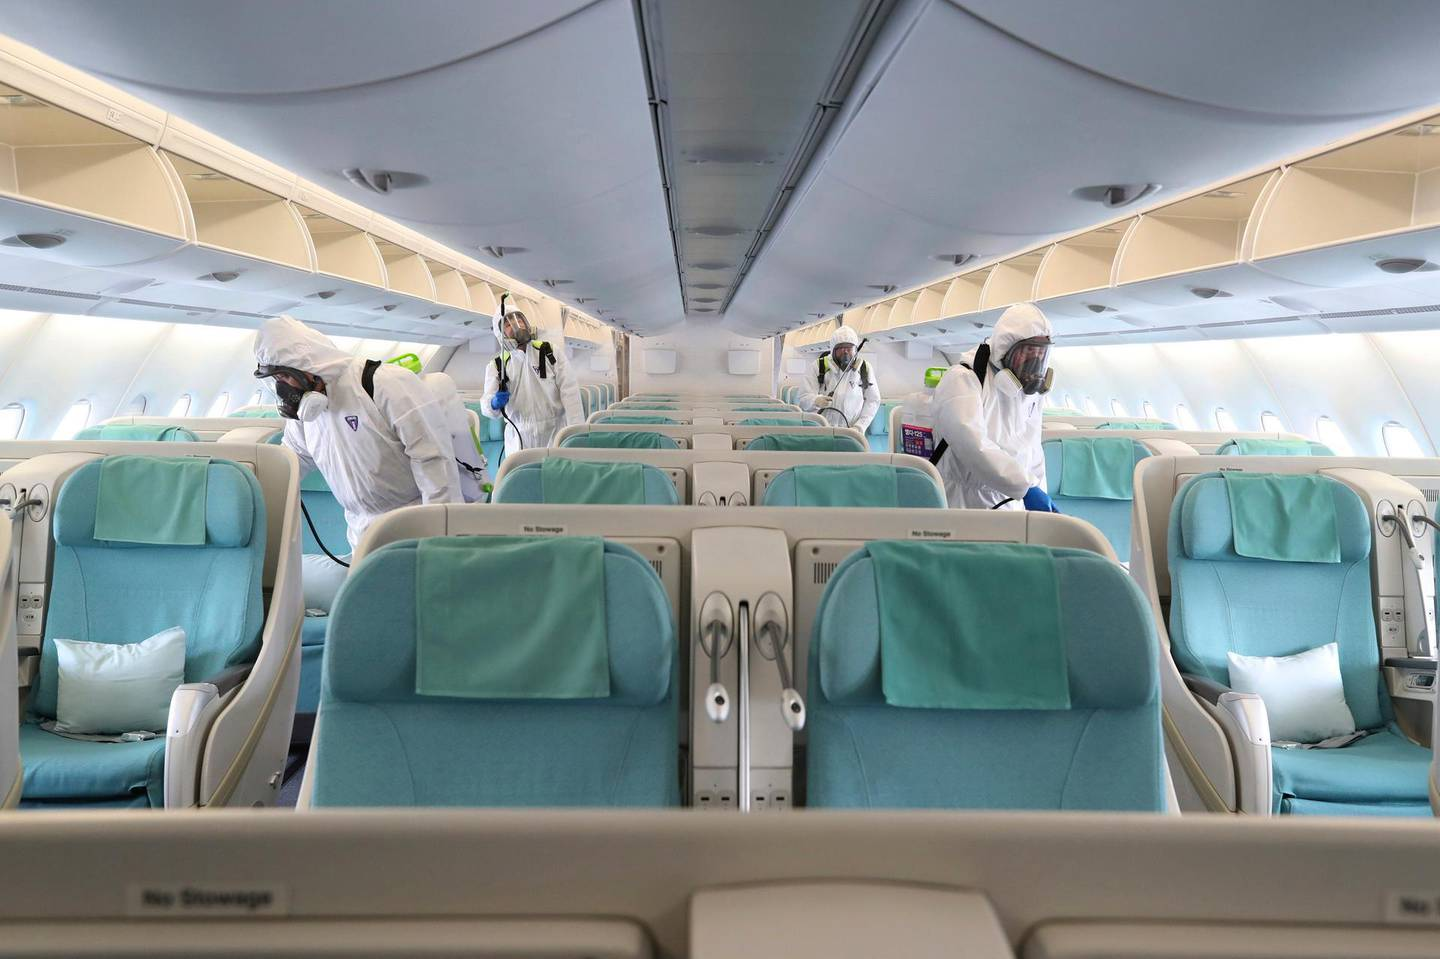 Workers wearing protective gears spray disinfectant inside an airplane for New York as a precaution against the new coronavirus at Incheon International Airport in Incheon, South Korea, Wednesday, March 4, 2020. The coronavirus epidemic shifted increasingly westward toward the Middle East, Europe and the United States on Tuesday, with governments taking emergency steps to ease shortages of masks and other supplies for front-line doctors and nurses. (Suh Myoung-geon/Yonhap via AP)